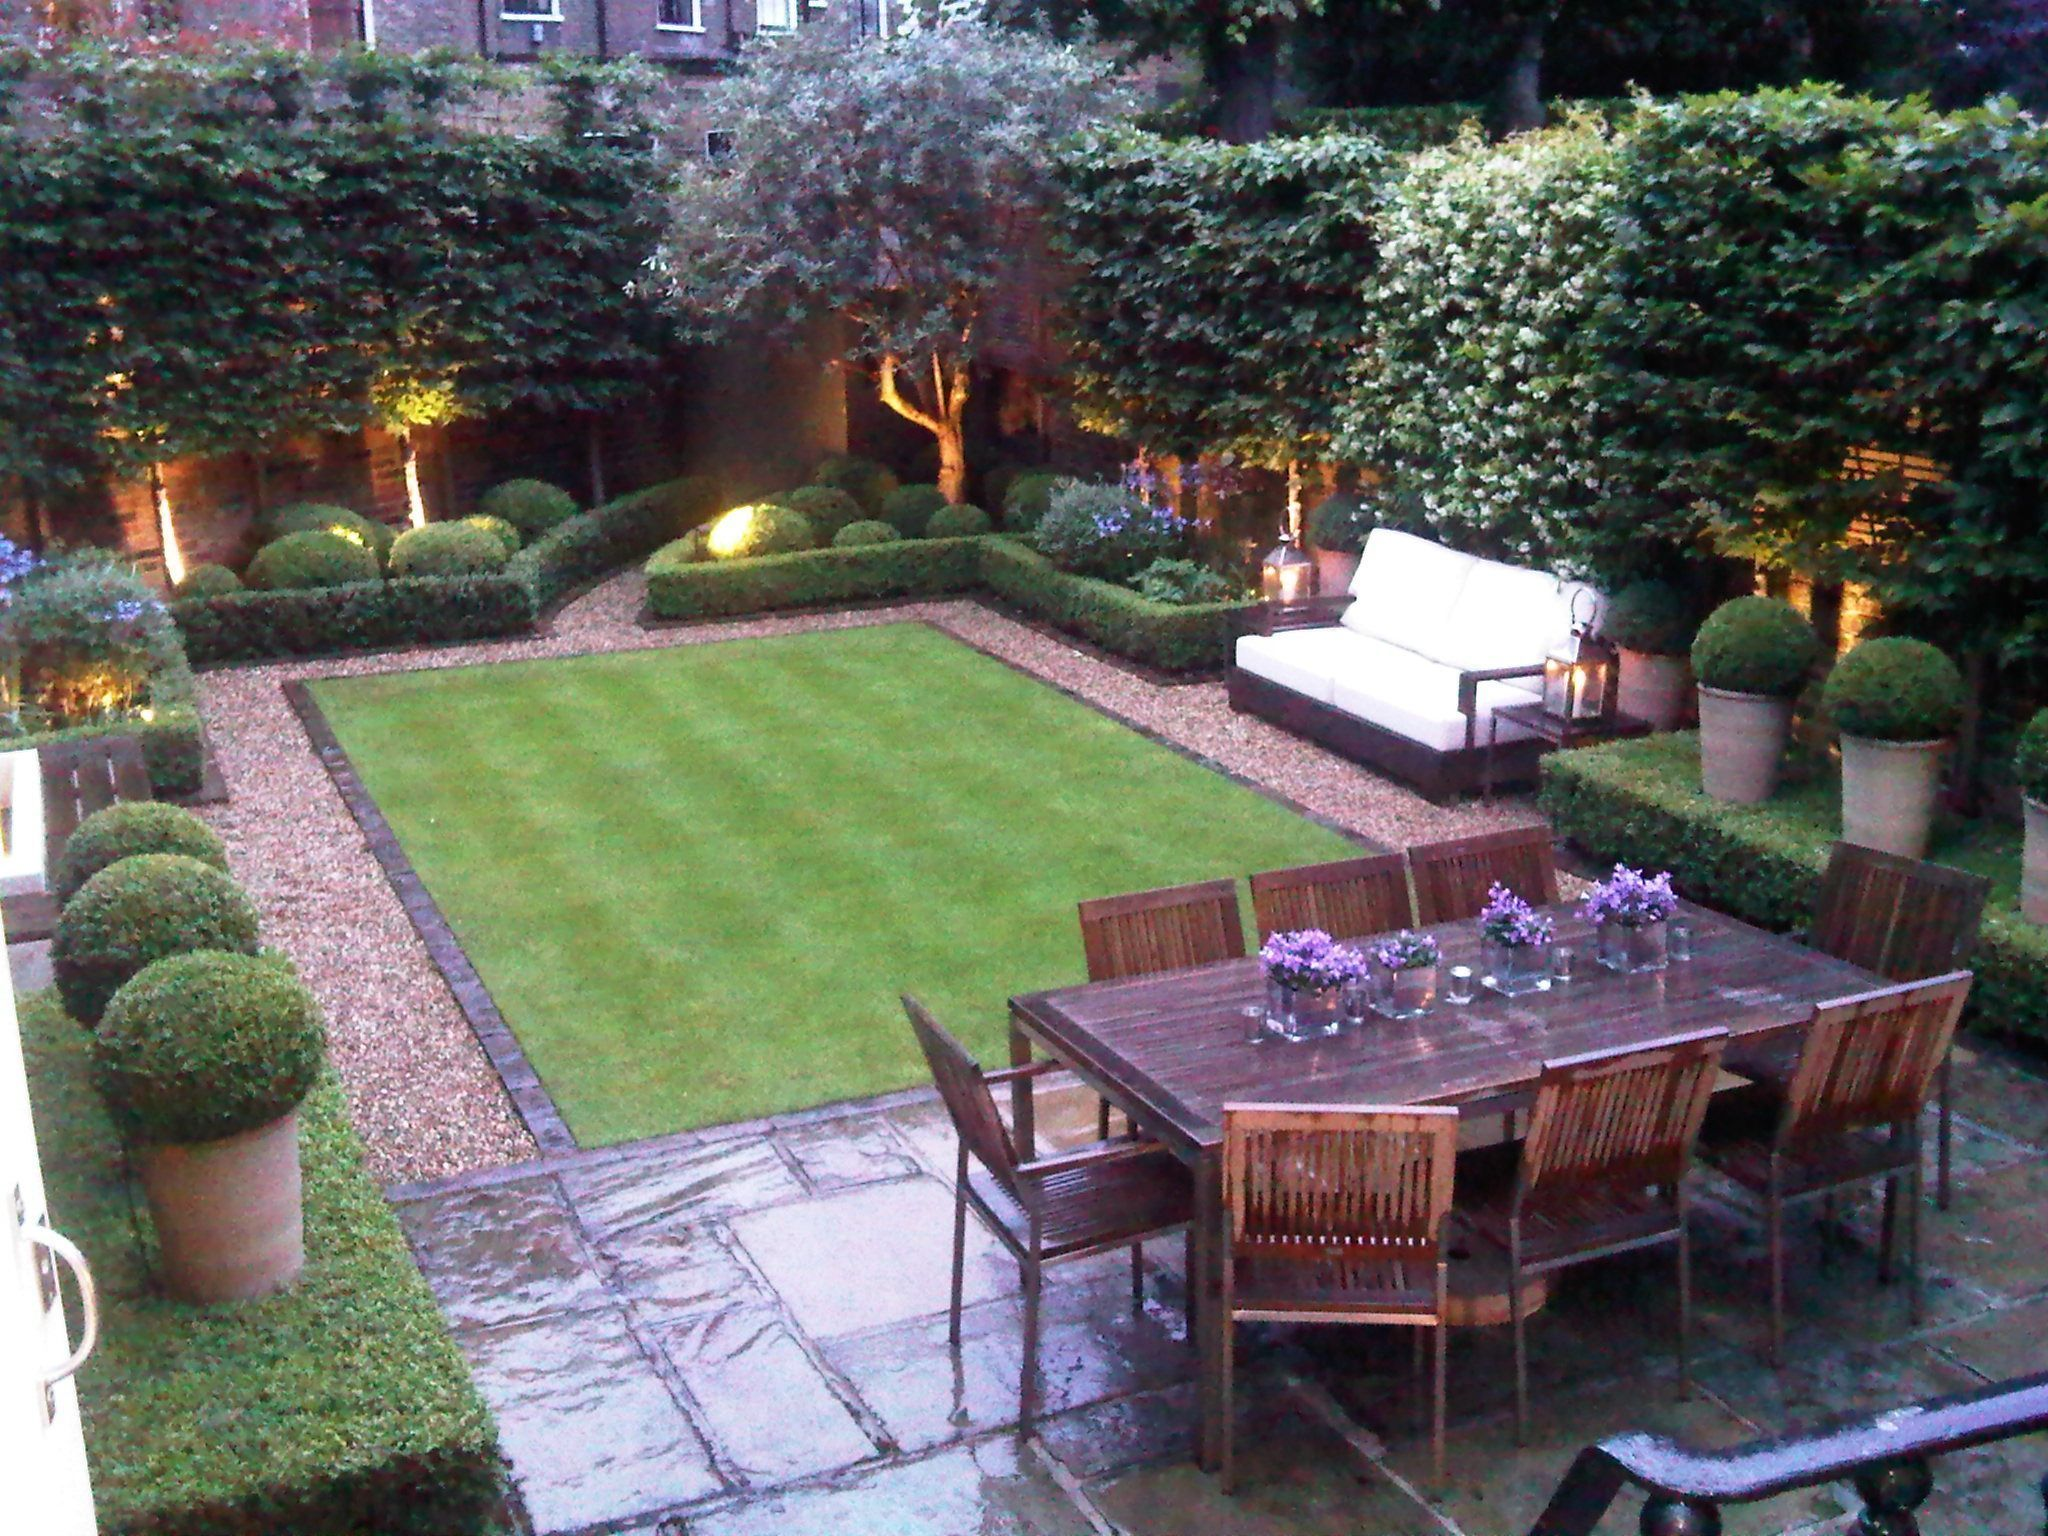 10 Clever Initiatives Of How To Makeover Backyard Garden Designs And Ideas Taverniers Courtyard Gardens Design Small Backyard Landscaping Small Garden Design Backyard garden how to